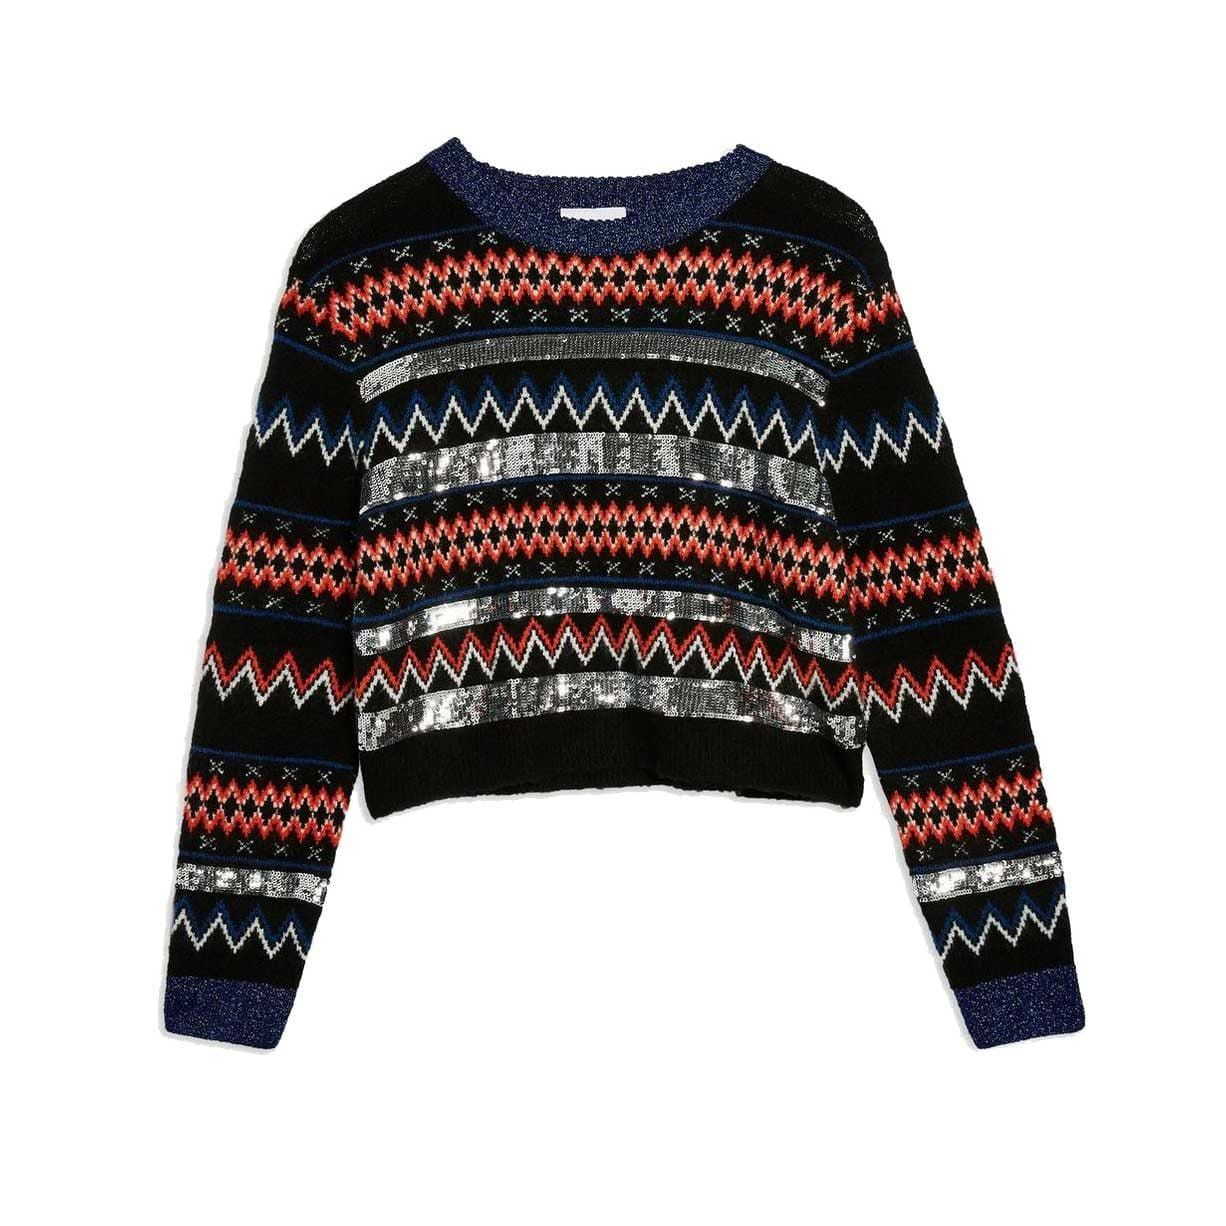 38 chic knits to wear for Christmas Jumper Day tomorrow in